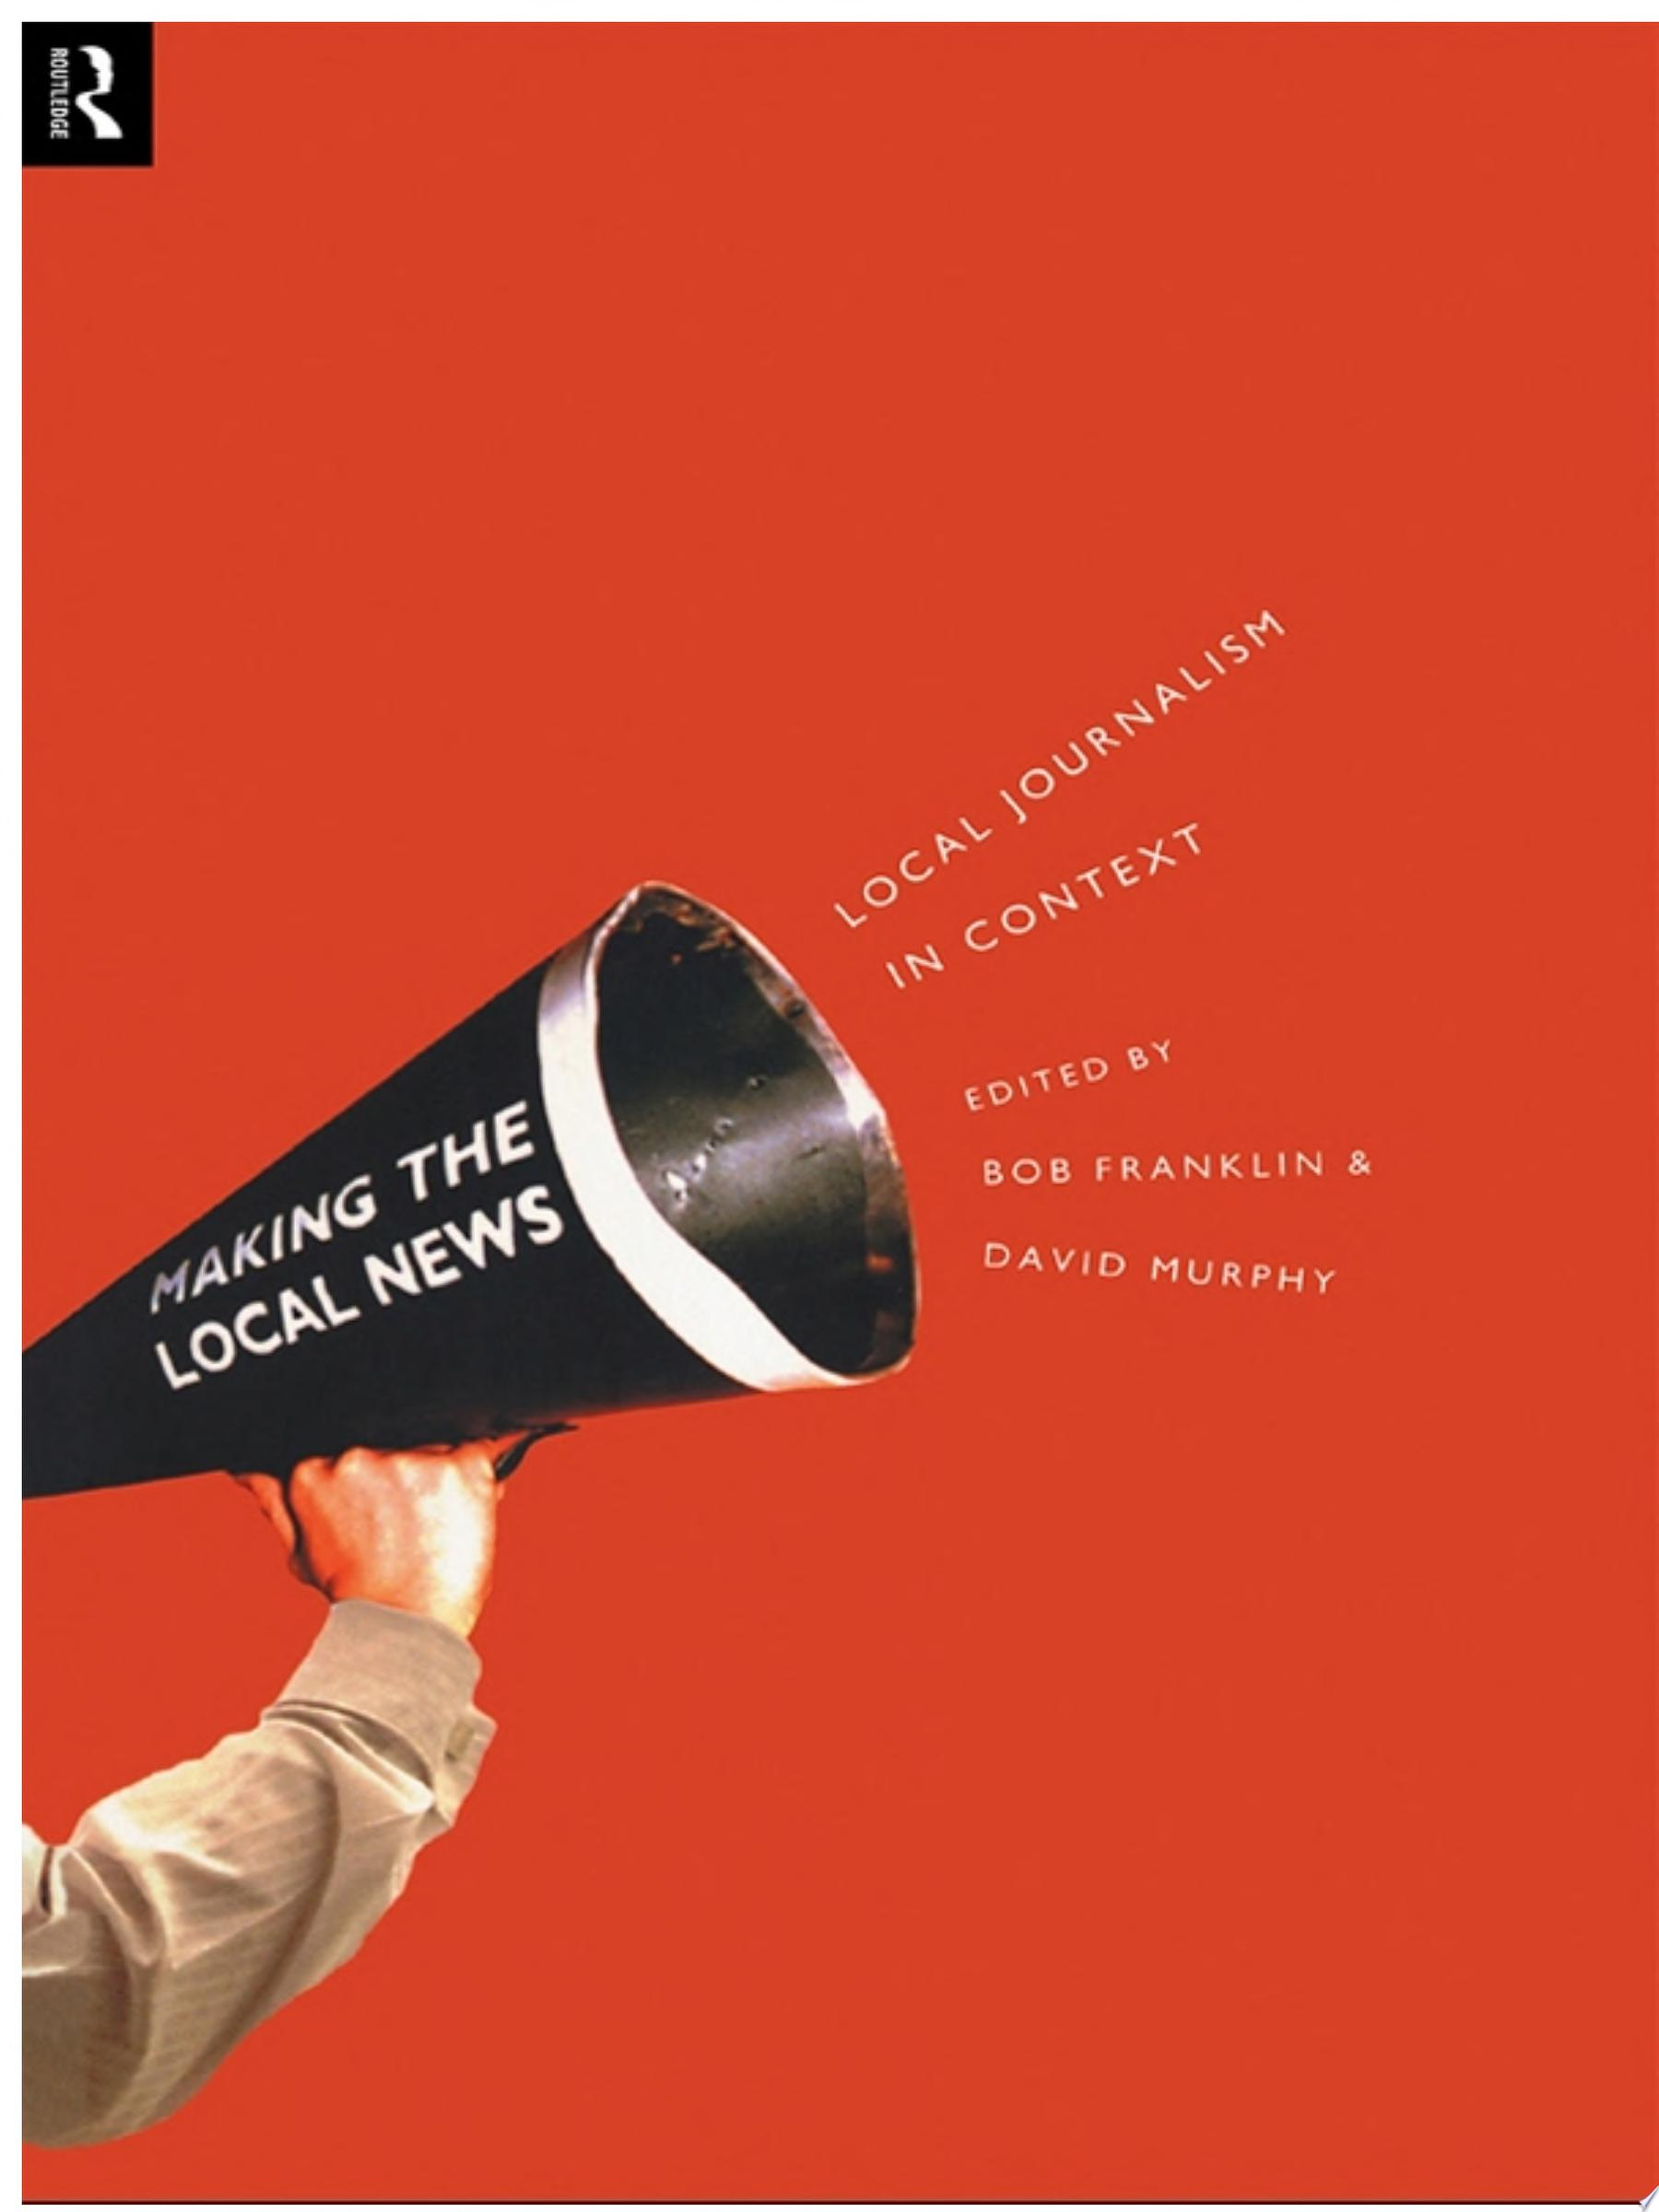 Local Journalism and Local Media